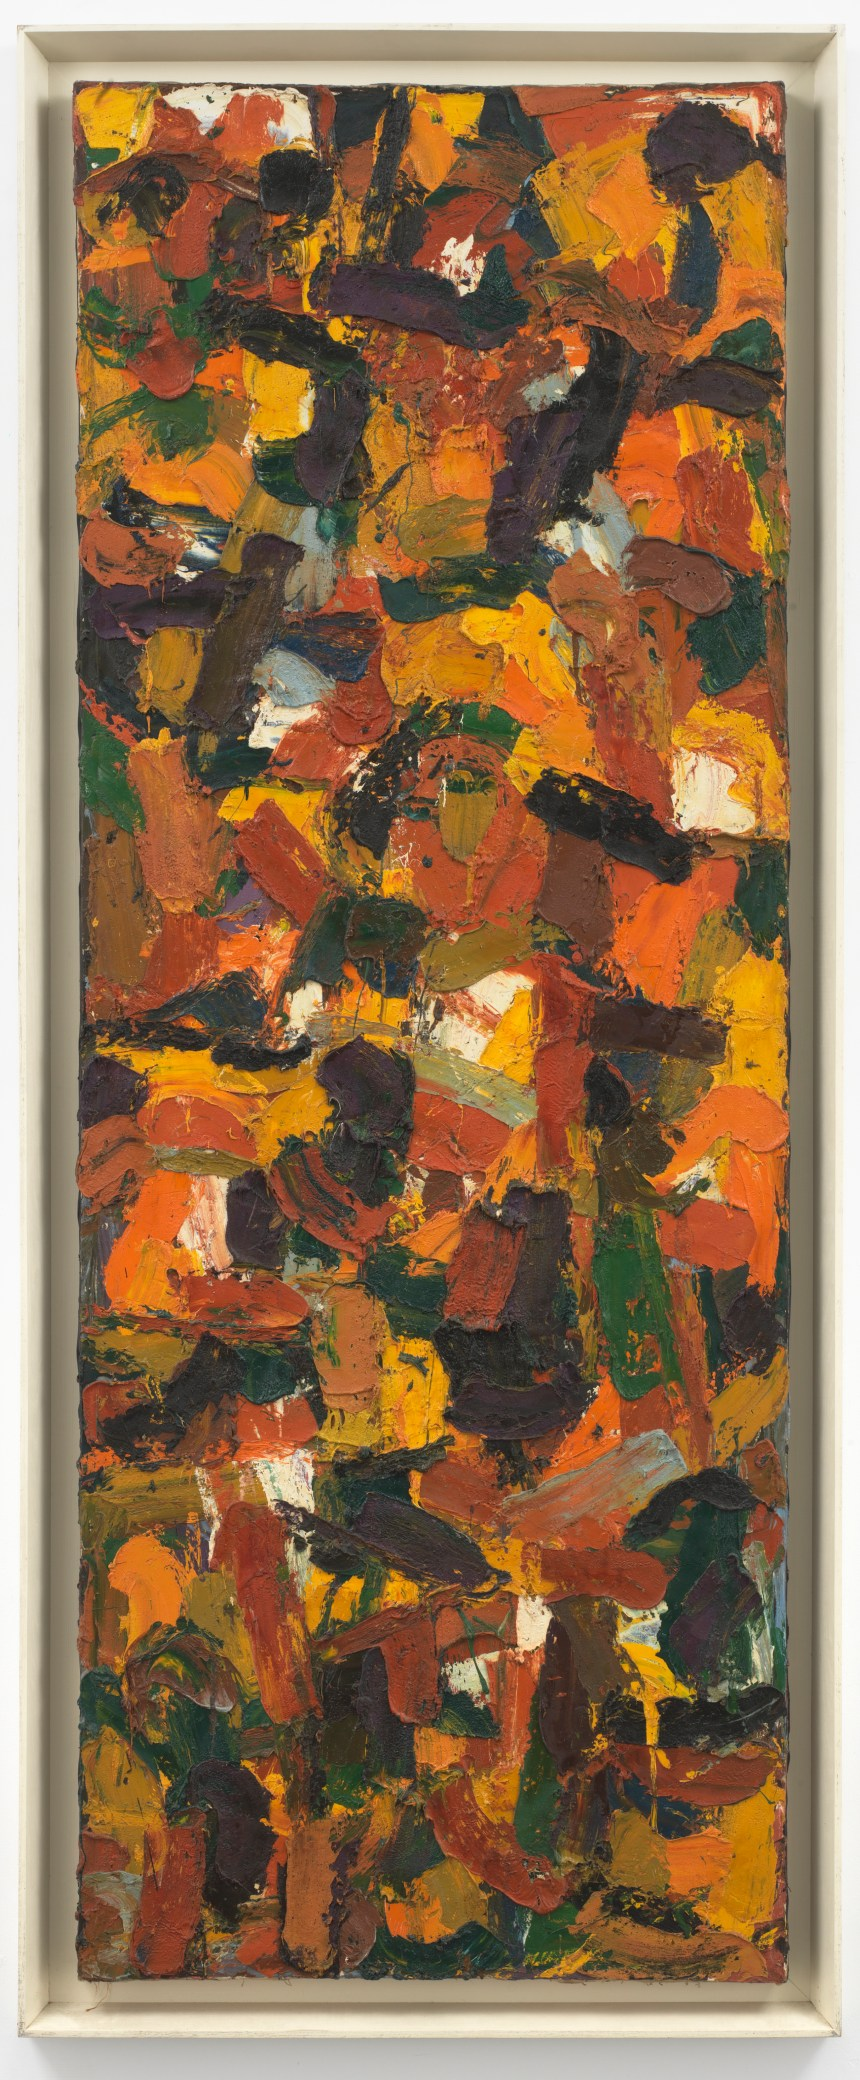 AI Held Untitled 1955  Oil on canvas  96 7/8 x 36 in. (246 x 91.5 cm)  101 7/8 x 41 15/16 x 1 15/16 in. (258.7 x 106.5 x 5 cm) (framed)  the artist. Photo Christopher Burke, New York Courtesy White Cube and AI Held Foundation, Inc.